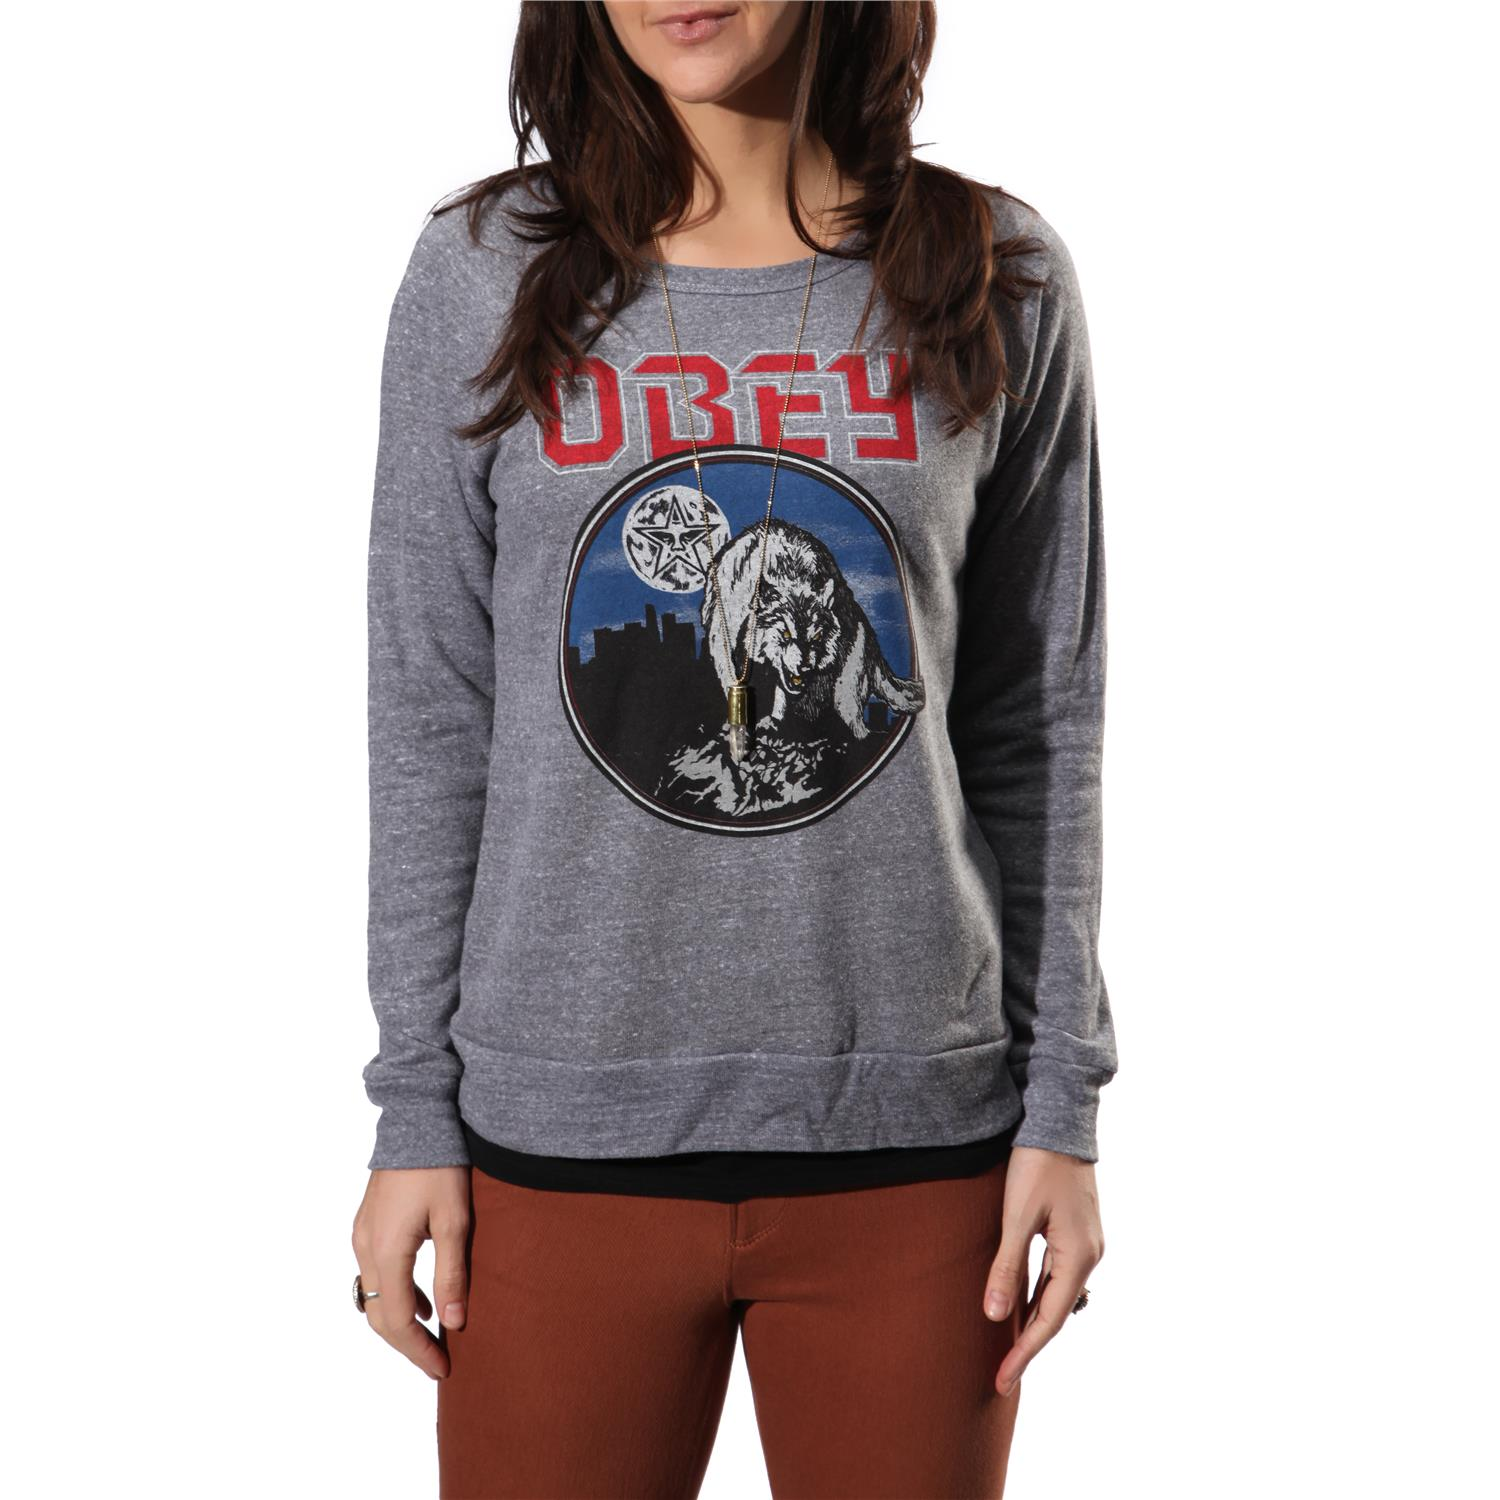 Find the latest Obey tees, sweatshirts, joggers, hats and more for Men and Women. Shop Obey Clothing at PacSun and enjoy free shipping on all orders over $50! Limited Time! Holiday Sale Up to 50% Off Shop Mens Shop Womens details. Limited Time! Holiday Sale Up to 50% Off details.